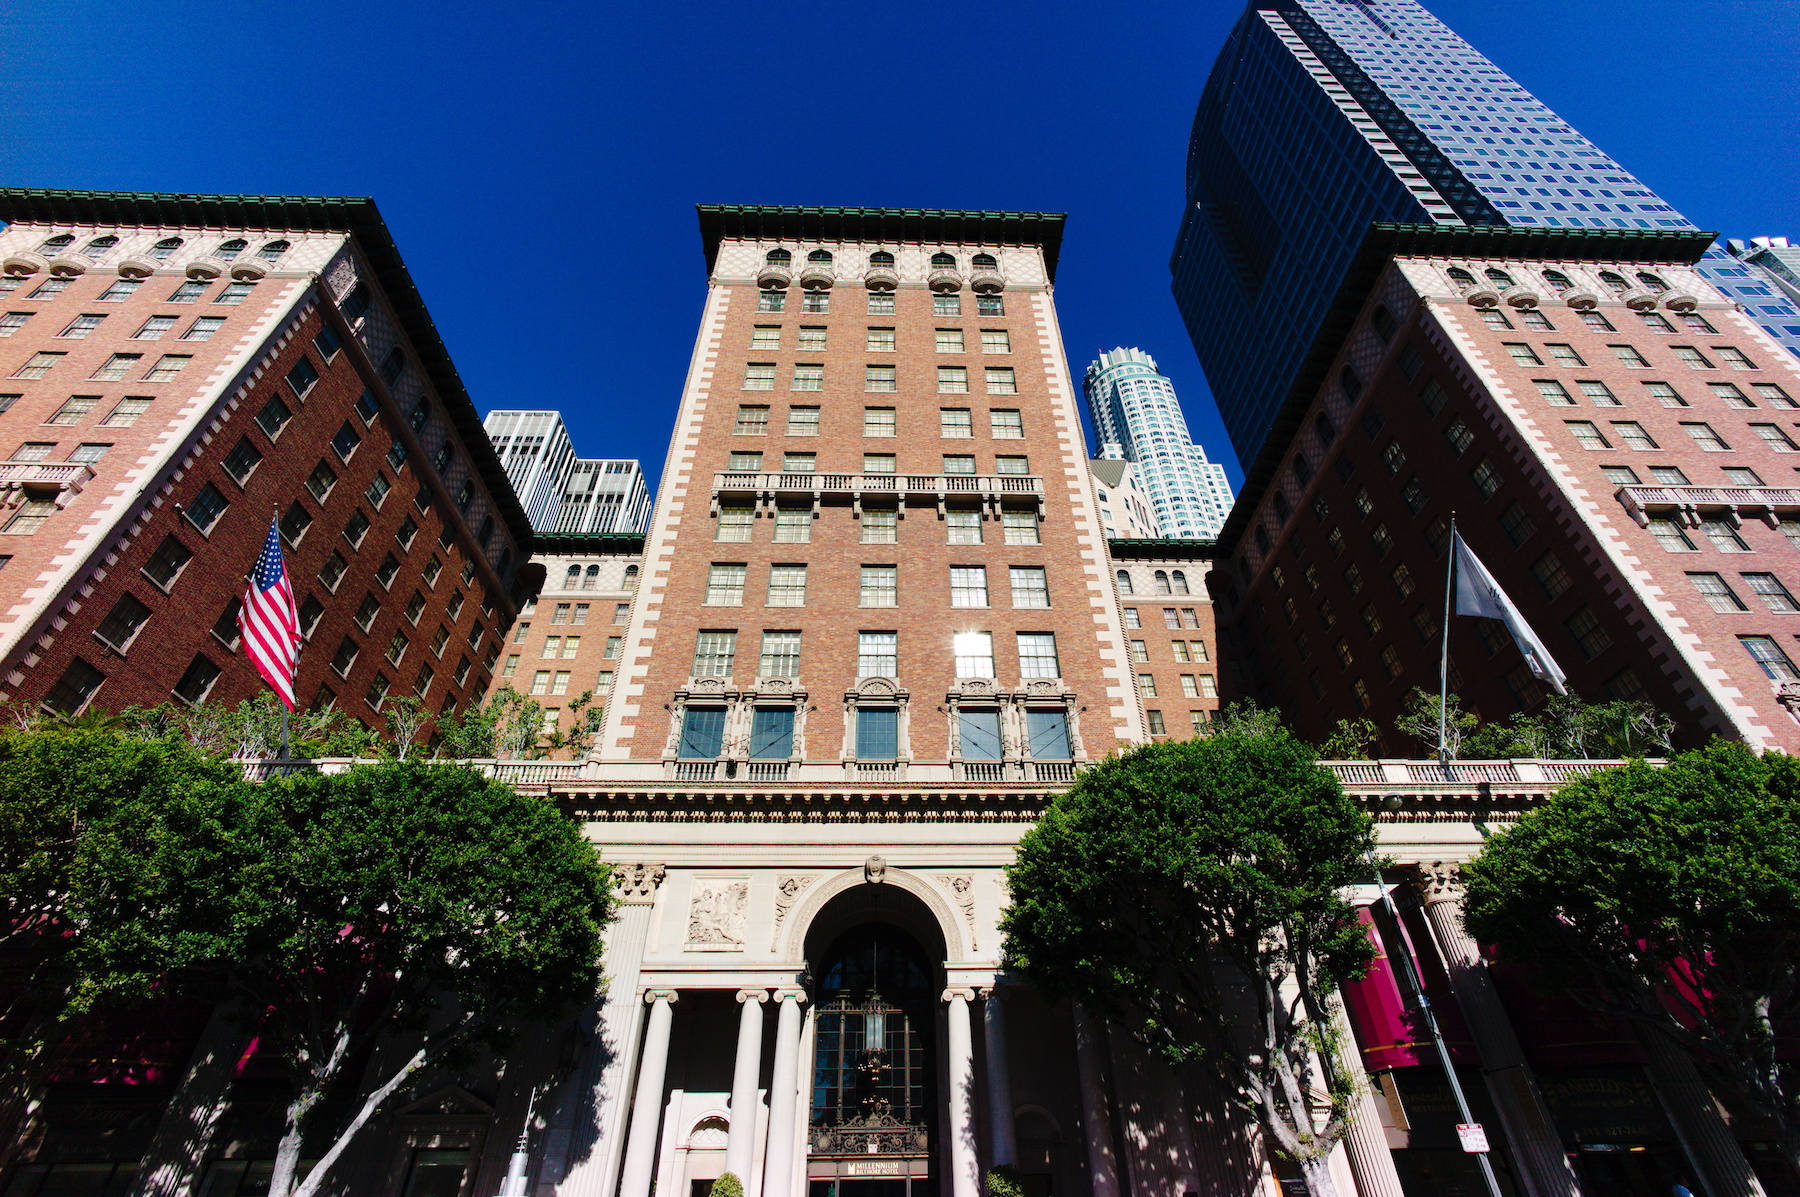 HQ in the historic Biltmore Hotel in Downtown Los Angeles